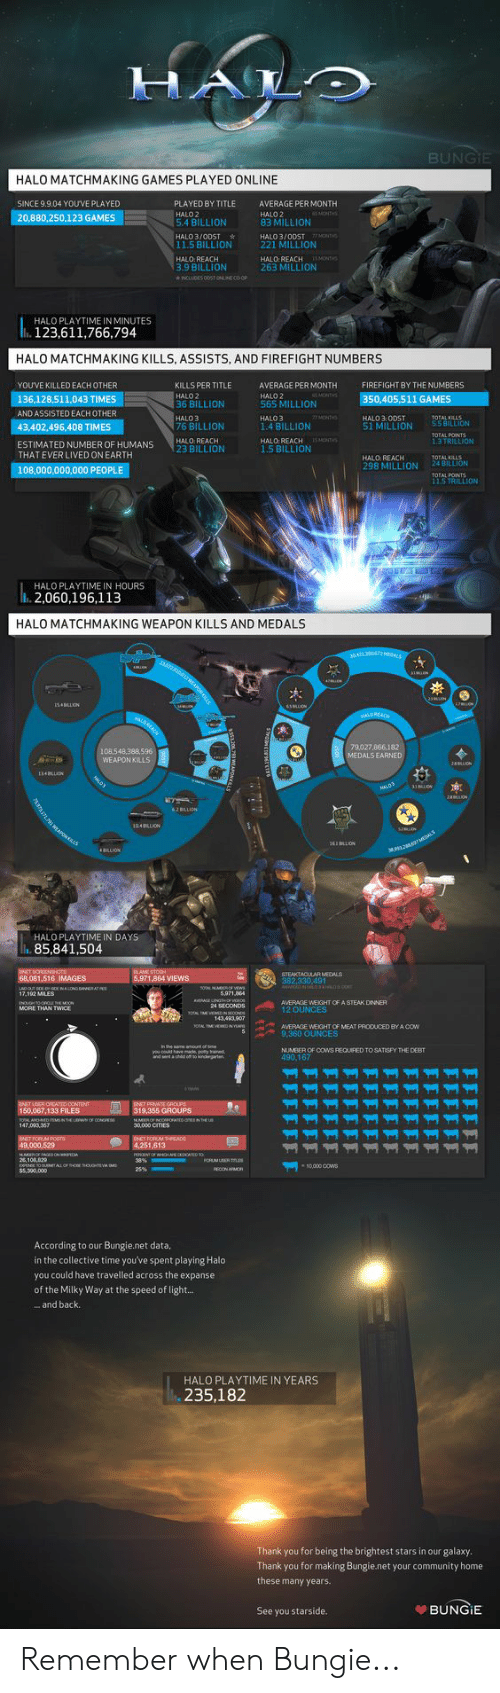 Community, Halo, and Yo: HALO  BUNGIE  HALO MATCHMAKING GAMES PLAYED ONLINE  SINCE 9.9.04 YOUVE PLAYED  PLAYED BY TITLE  AVERAGE PER MONTH  HALO 2  83 MILLION  MONTHS  HALO2  20,880,250,123 GAMES  5.4 BILLION  HALO 3/ODST  HALO 3/00ST  7/ MONTHS  11.5 BILLION  221 MILLION  HALO: REACH 1SMONTHS  263 MILLION  HALO: REACH  3.9 BILLION  NCLUDES O0ST ONINE CO OP  HALO PLAYTIME IN MINUTES  123,611,766,794  HALO MATCHMAKING KILLS, ASSISTS, AND FIREFIGHT NUMBERS  YOUVE KILLED EACH OTHER  KILLS PER TITLE  AVERAGE PER MONTH  FIREFIGHT BY THE NUMBERS  VMONTHS  HALO 2  36 BILLION  HALO 2  565 MILLION  136,128,511,043 TIMES  350,405,511 GAMES  AND ASSISTED EACH OTHER  HALO 3  76 BILLION  HALO 3.ODST  51 MILLION  27 MONTHO  HALO 3  TOTAL KILLS  55 BILETON  43,402,496,408 TIMES  1.4 BILLION  TOTAL POINTS  13TRILLION  HALO: REACH  1.5 BILLION  15MONTHS  HALO: REACH  ESTIMATED NUMBER OF HUMANS  THAT EVER LIVED ON EARTH  23 BILLION  HALO: REACH  R MILLION  TOTAL KILLS  24 BILLION  108,000,000,000 PEOPLE  TOTAL POINTS  11S TRILLION  AL E  HALO PLAYTIME IN HOURS  2,060,196,113  HALO MATCHMAKING WEAPON KILLS AND MEDALS  304713872MEDALE  ki  25MON  1S4LLON  armu  3BLLON  STND st  HALDREAD  ALDREACH  79,027.866,182  108,548,388,596  WEAPON KILLS  MEDALS EARNED  2LON  34BLLON  LD3  31ON  AALOS  2 ON  DLRAPONKS  2BLLION  104LLION  NOTE1St  LLION  M2 2EDALS  HALO PLAYTIME IN DAYS  85,841,504  INT DORENSHOTS  68,081,516 IMAGES  া  STEAKTACUAR MEDALS  5,971,864 VIEWS  382,330,491  wwck skioaco  LADQR NALONG DAeeeRA  17,192 MILES  0AL MMEROF VEws  5,97164  tACE LENGSeOrO  24 SECONDS  DOUGH0-OENEO  MORE THAN TWICE  AVERAGE WEIGHT OF A STEAK DINNER  12 OUNCES  Yo TME WDNEOOND  143,493.907  yoAL TMEVDNA  AVERAGE WEIGHT OF MEAT PRODUCED BY A COW  9,360 OUNCES  .n he sama amount of bma  NUMBER OF CowS REQUIRED TO SATISPY THE DEBT  490,167  ycould hve mad poy ined  and nt a chid o to kindgarten  nNET LOER ORCATED OONTINT  150,067,133 FILES  TOSAL APCHMDSusINEUWF aONGRESS  147,093 357  ENET PRIVATIE GROUPS  319,355 GROUPS  30,000 CITIES  INET FORLM PoeTS  49,000,529  NMROF PAGES ON  26108.029  EE 10 UMTALL OF HOOhou M  $5390,000  ONET FORLM THREAD  4,251,613  POROENTOF WHOHE CKDCAD TO  33%  FORLM UER Tm  S  s0,000 0OW  25%  RRCON AMOR  According to our Bungie.net data,  in the collective time you've spent playing Halo  you could have travelled across the expanse  of the Milky Way at the speed of light...  ...and back  HALO PLAYTIME IN YEARS  235,182  Thank you for being the brightest stars in our galaxy  Thank you for making Bungie.net your community home  these many years.  BUNGIE  See you starside. Remember when Bungie...